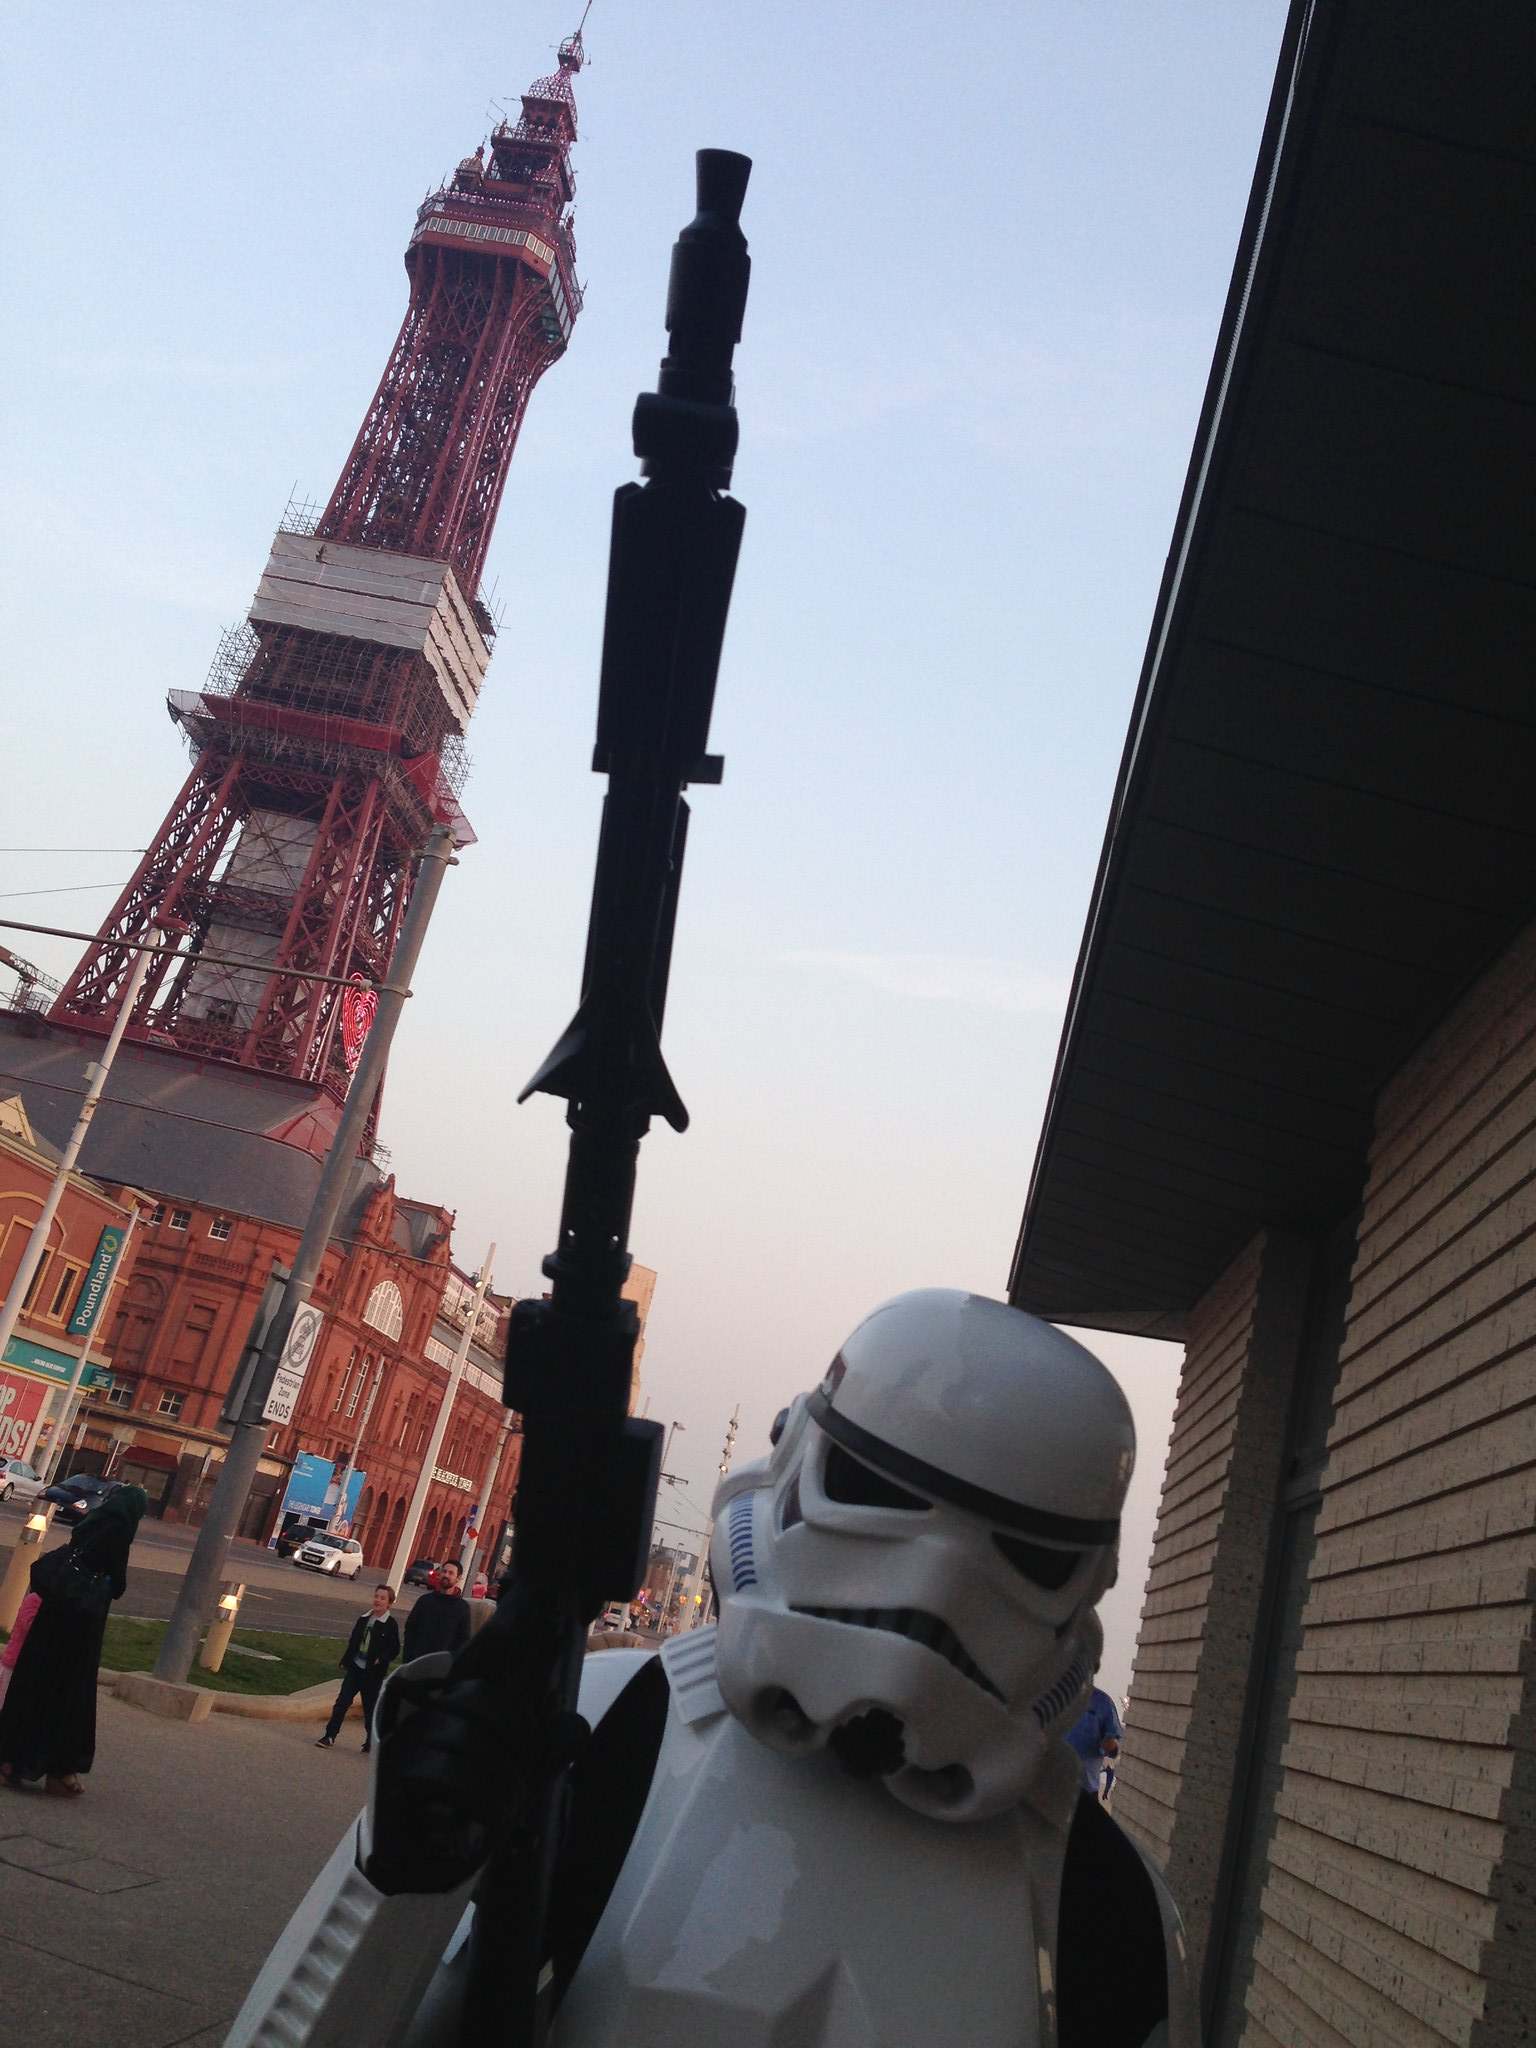 Blackpool Comic-Con Launch Party - Star Wars Stormtrooper by Blackpool Tower